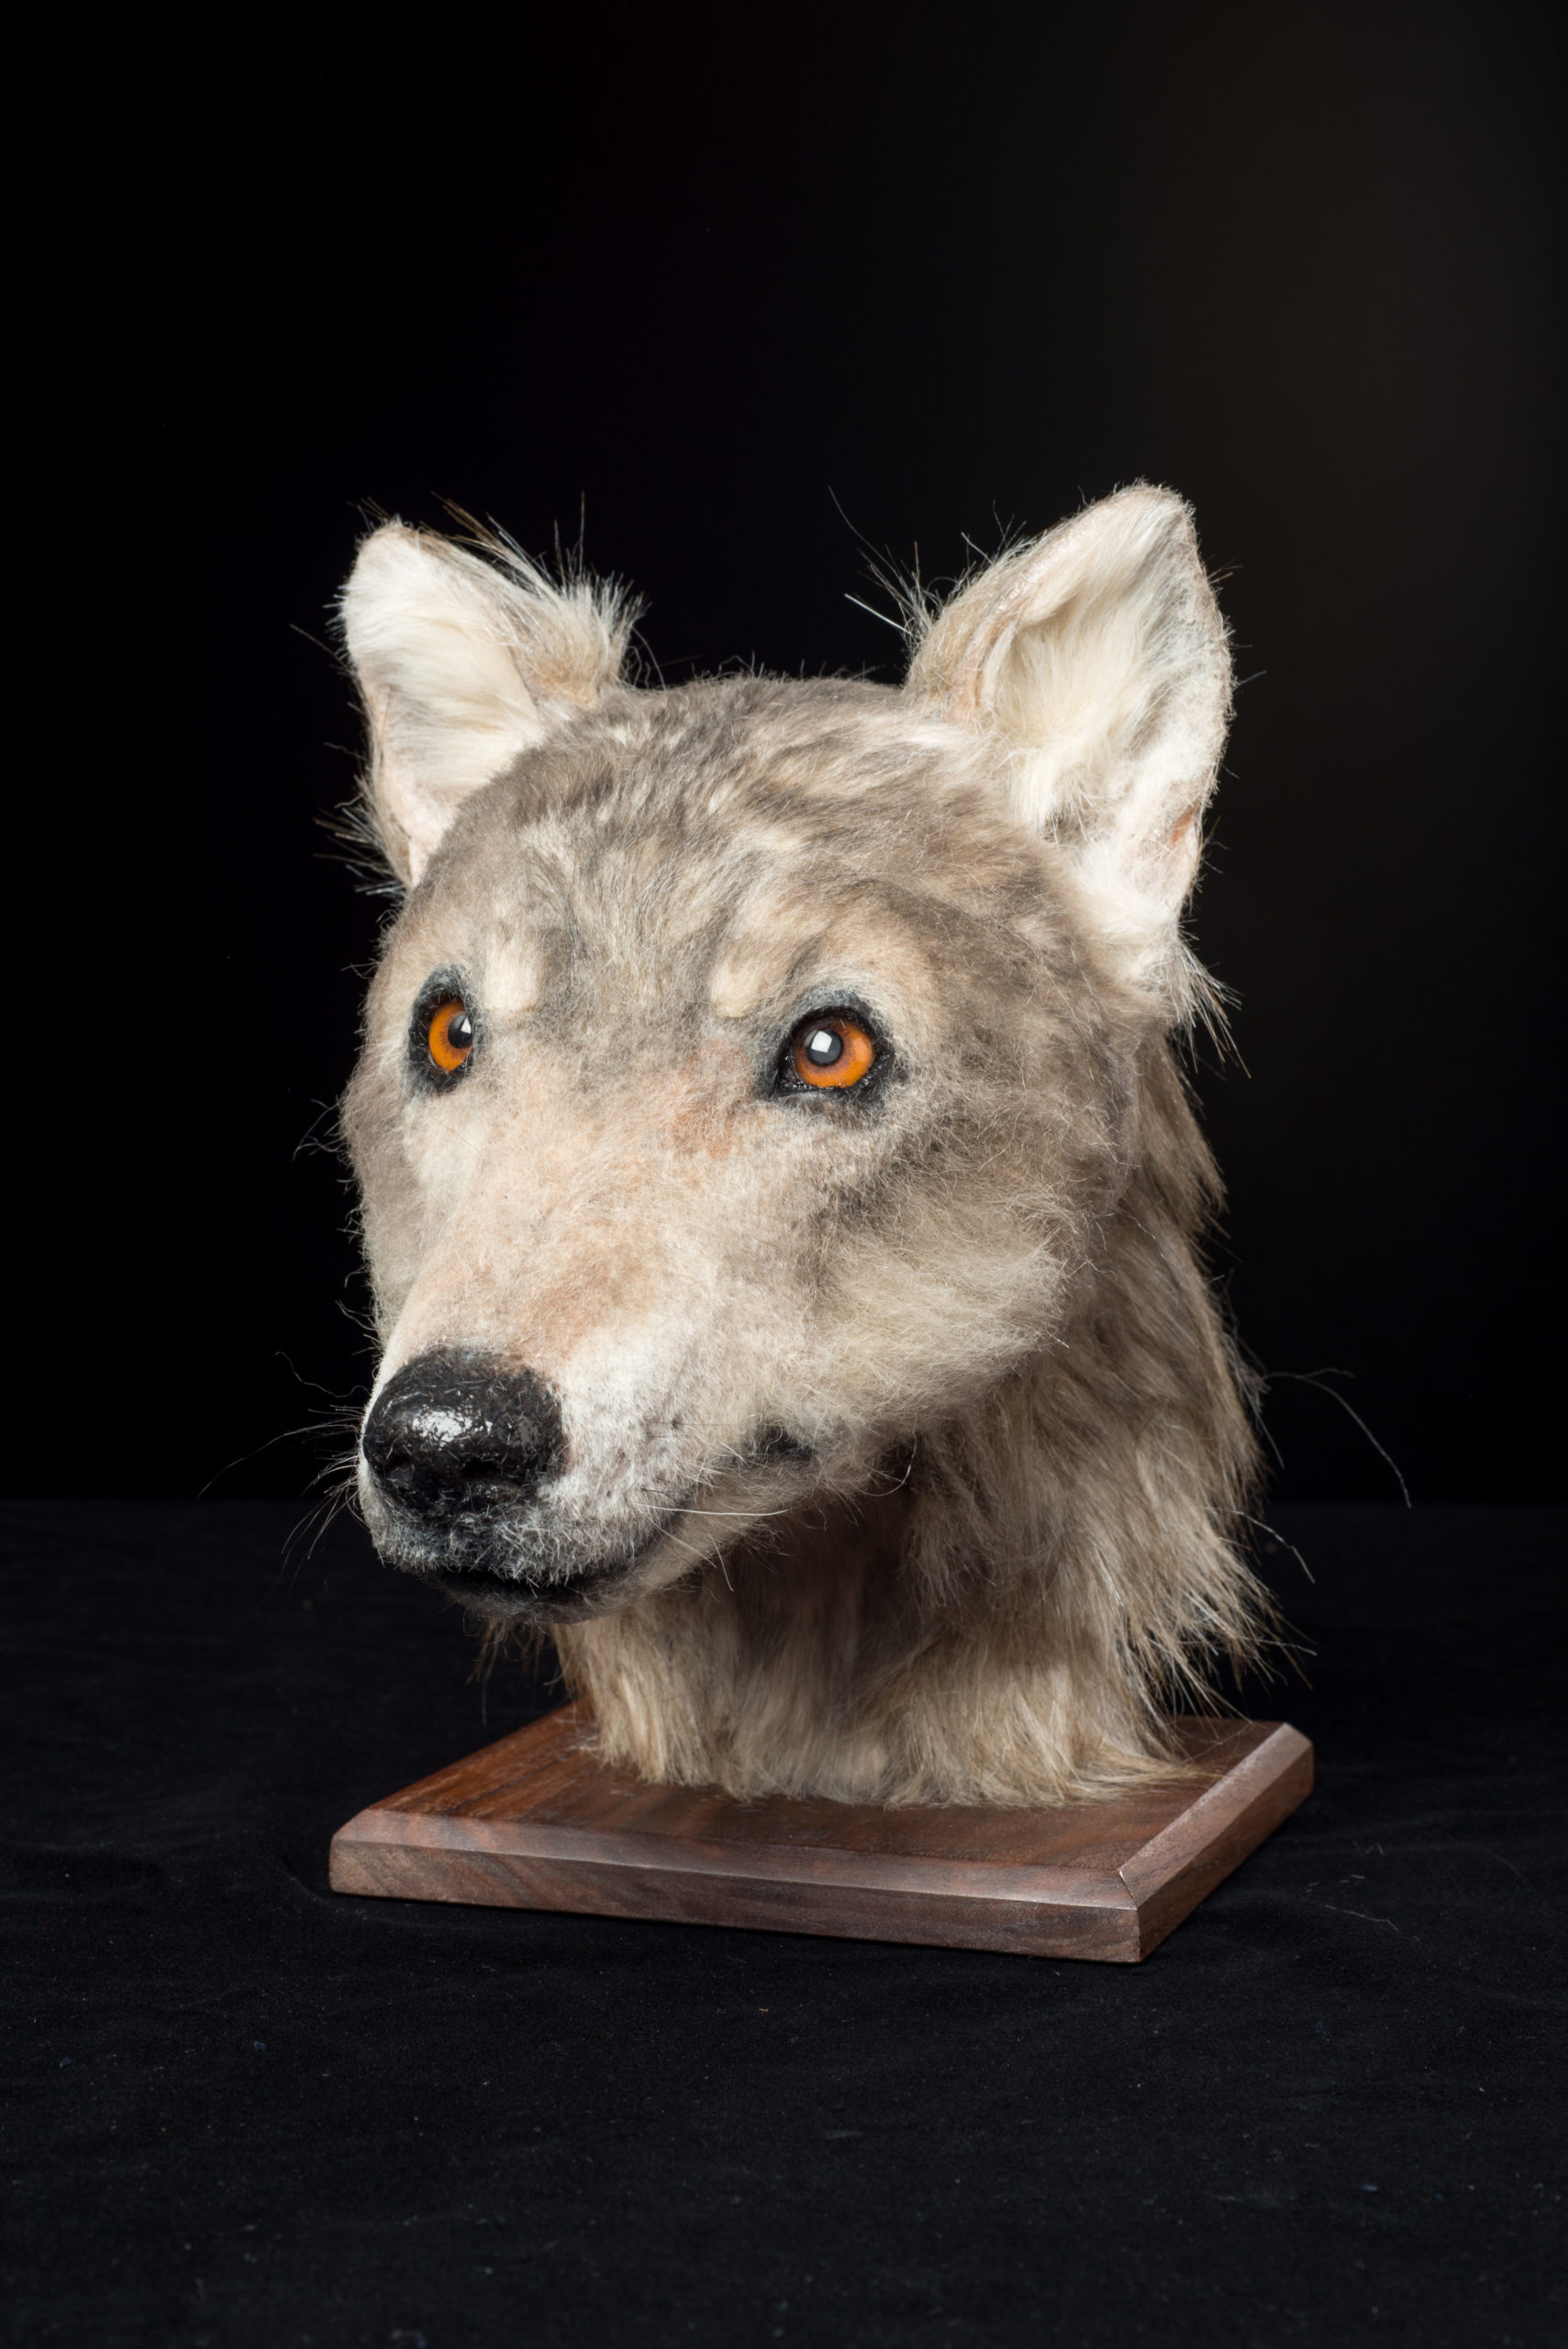 The head of a reconstructed dog